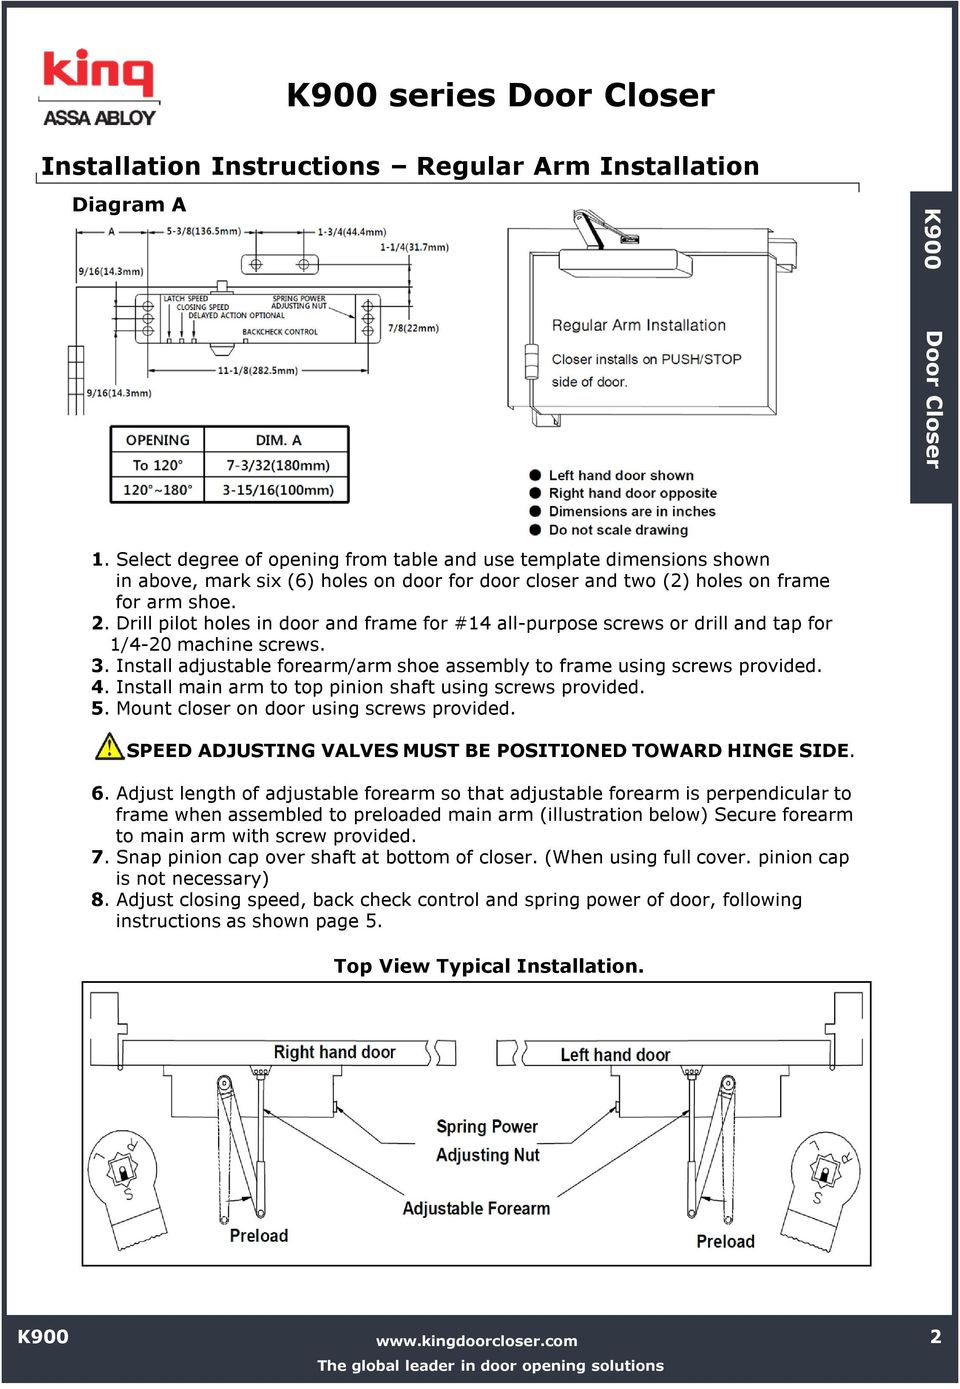 Installation Instructions K900 Series Door Closer Pdf 7900 Wiring Diagram Drill Pilot Holes In And Frame For 14 All Purpose Screws Or 3 Top Jamb